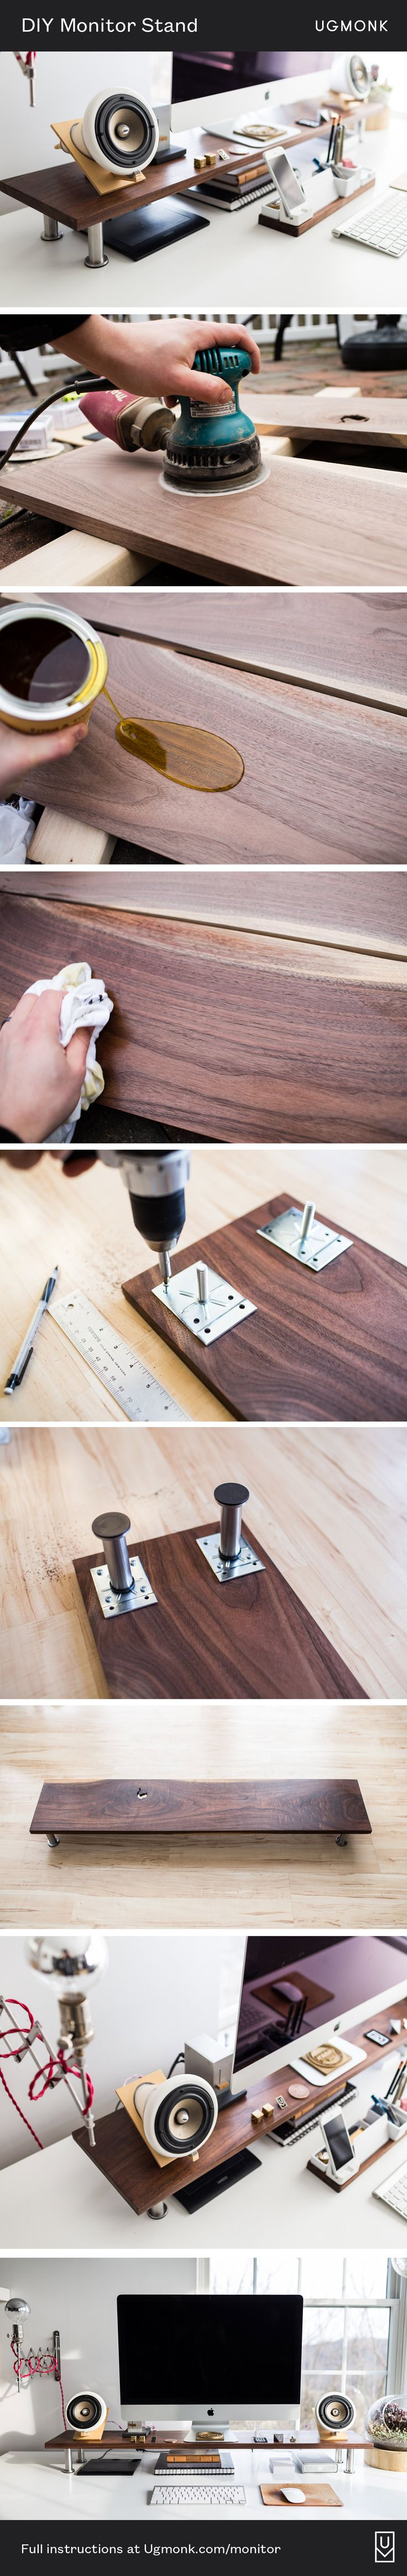 Ugmonk - DIY Monitor stand for under $50 - Full instructions in the post. http://ugmonk.com/2017/02/23/my-diy-monitor-stand/